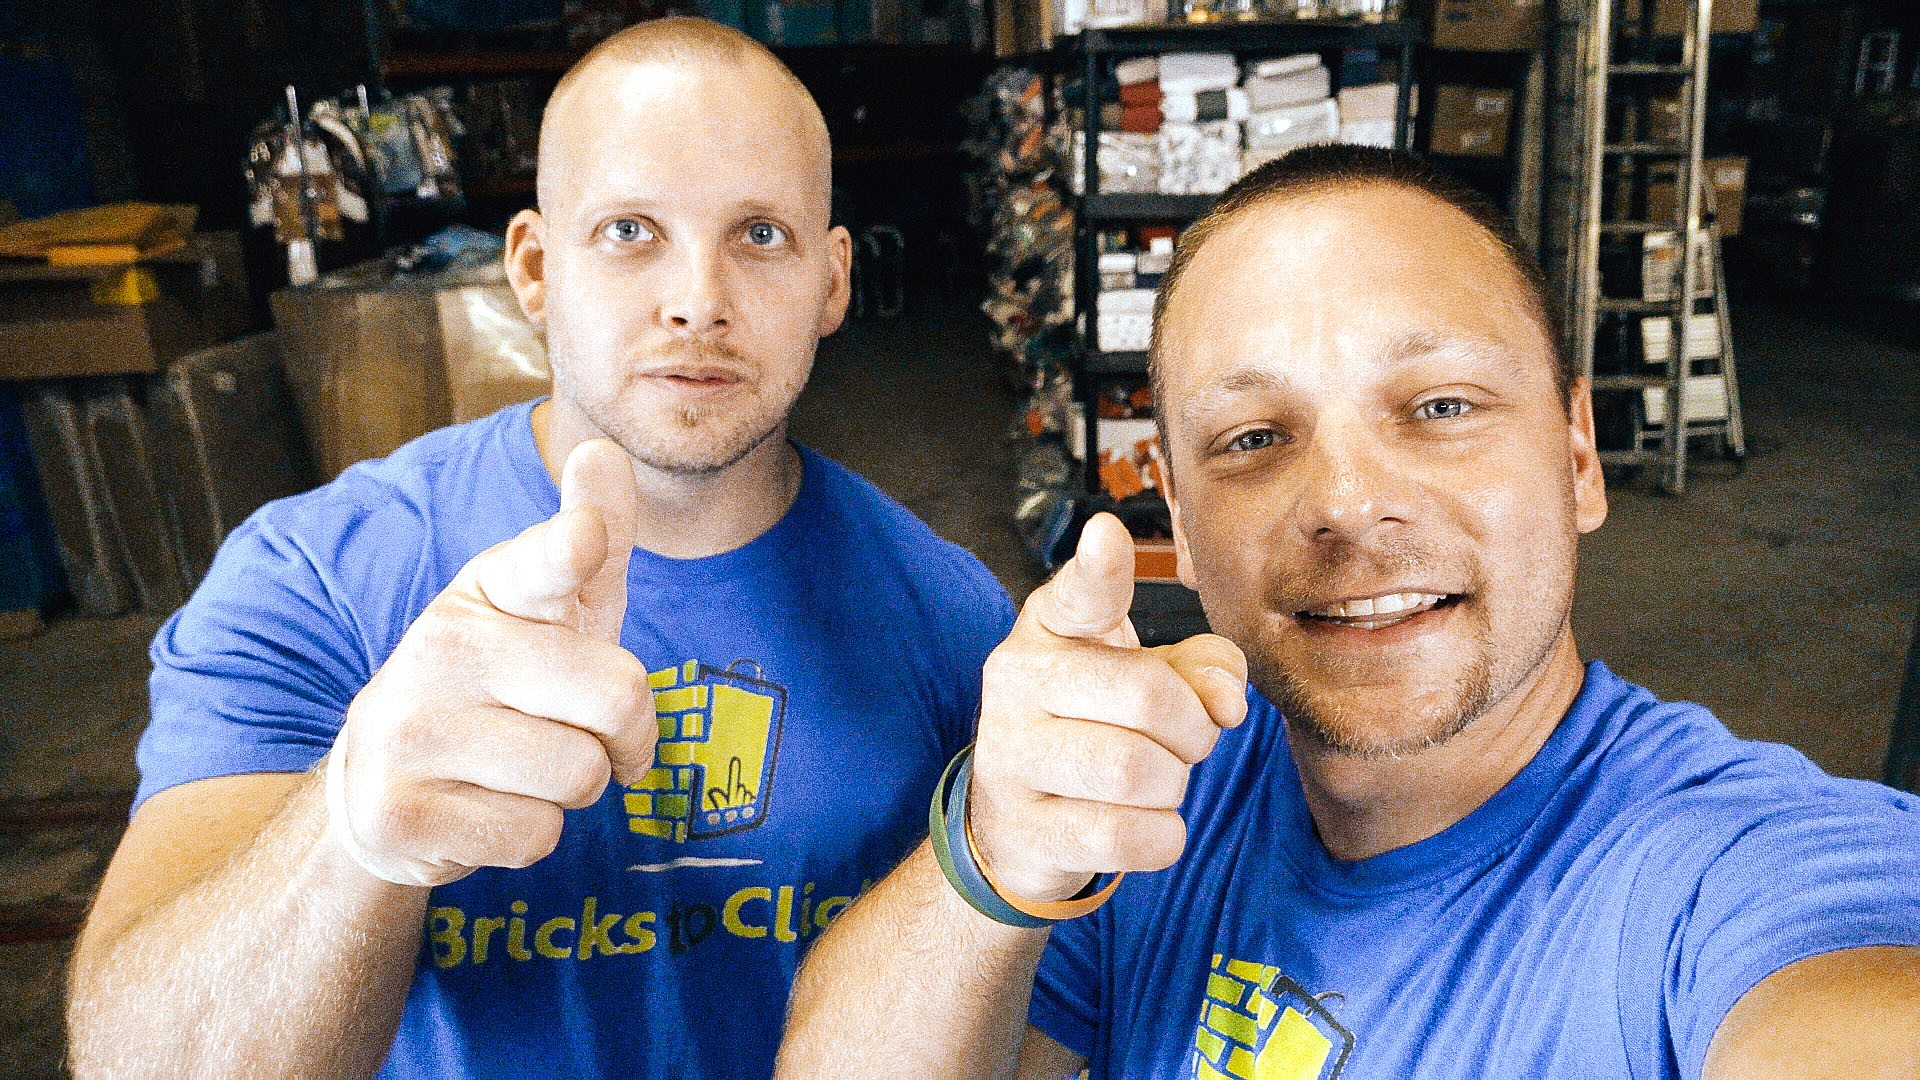 At left, Chris Clay with Chuck Popovich, owner of Bricks to Clicks. (Photo courtesy of A&E 2020)